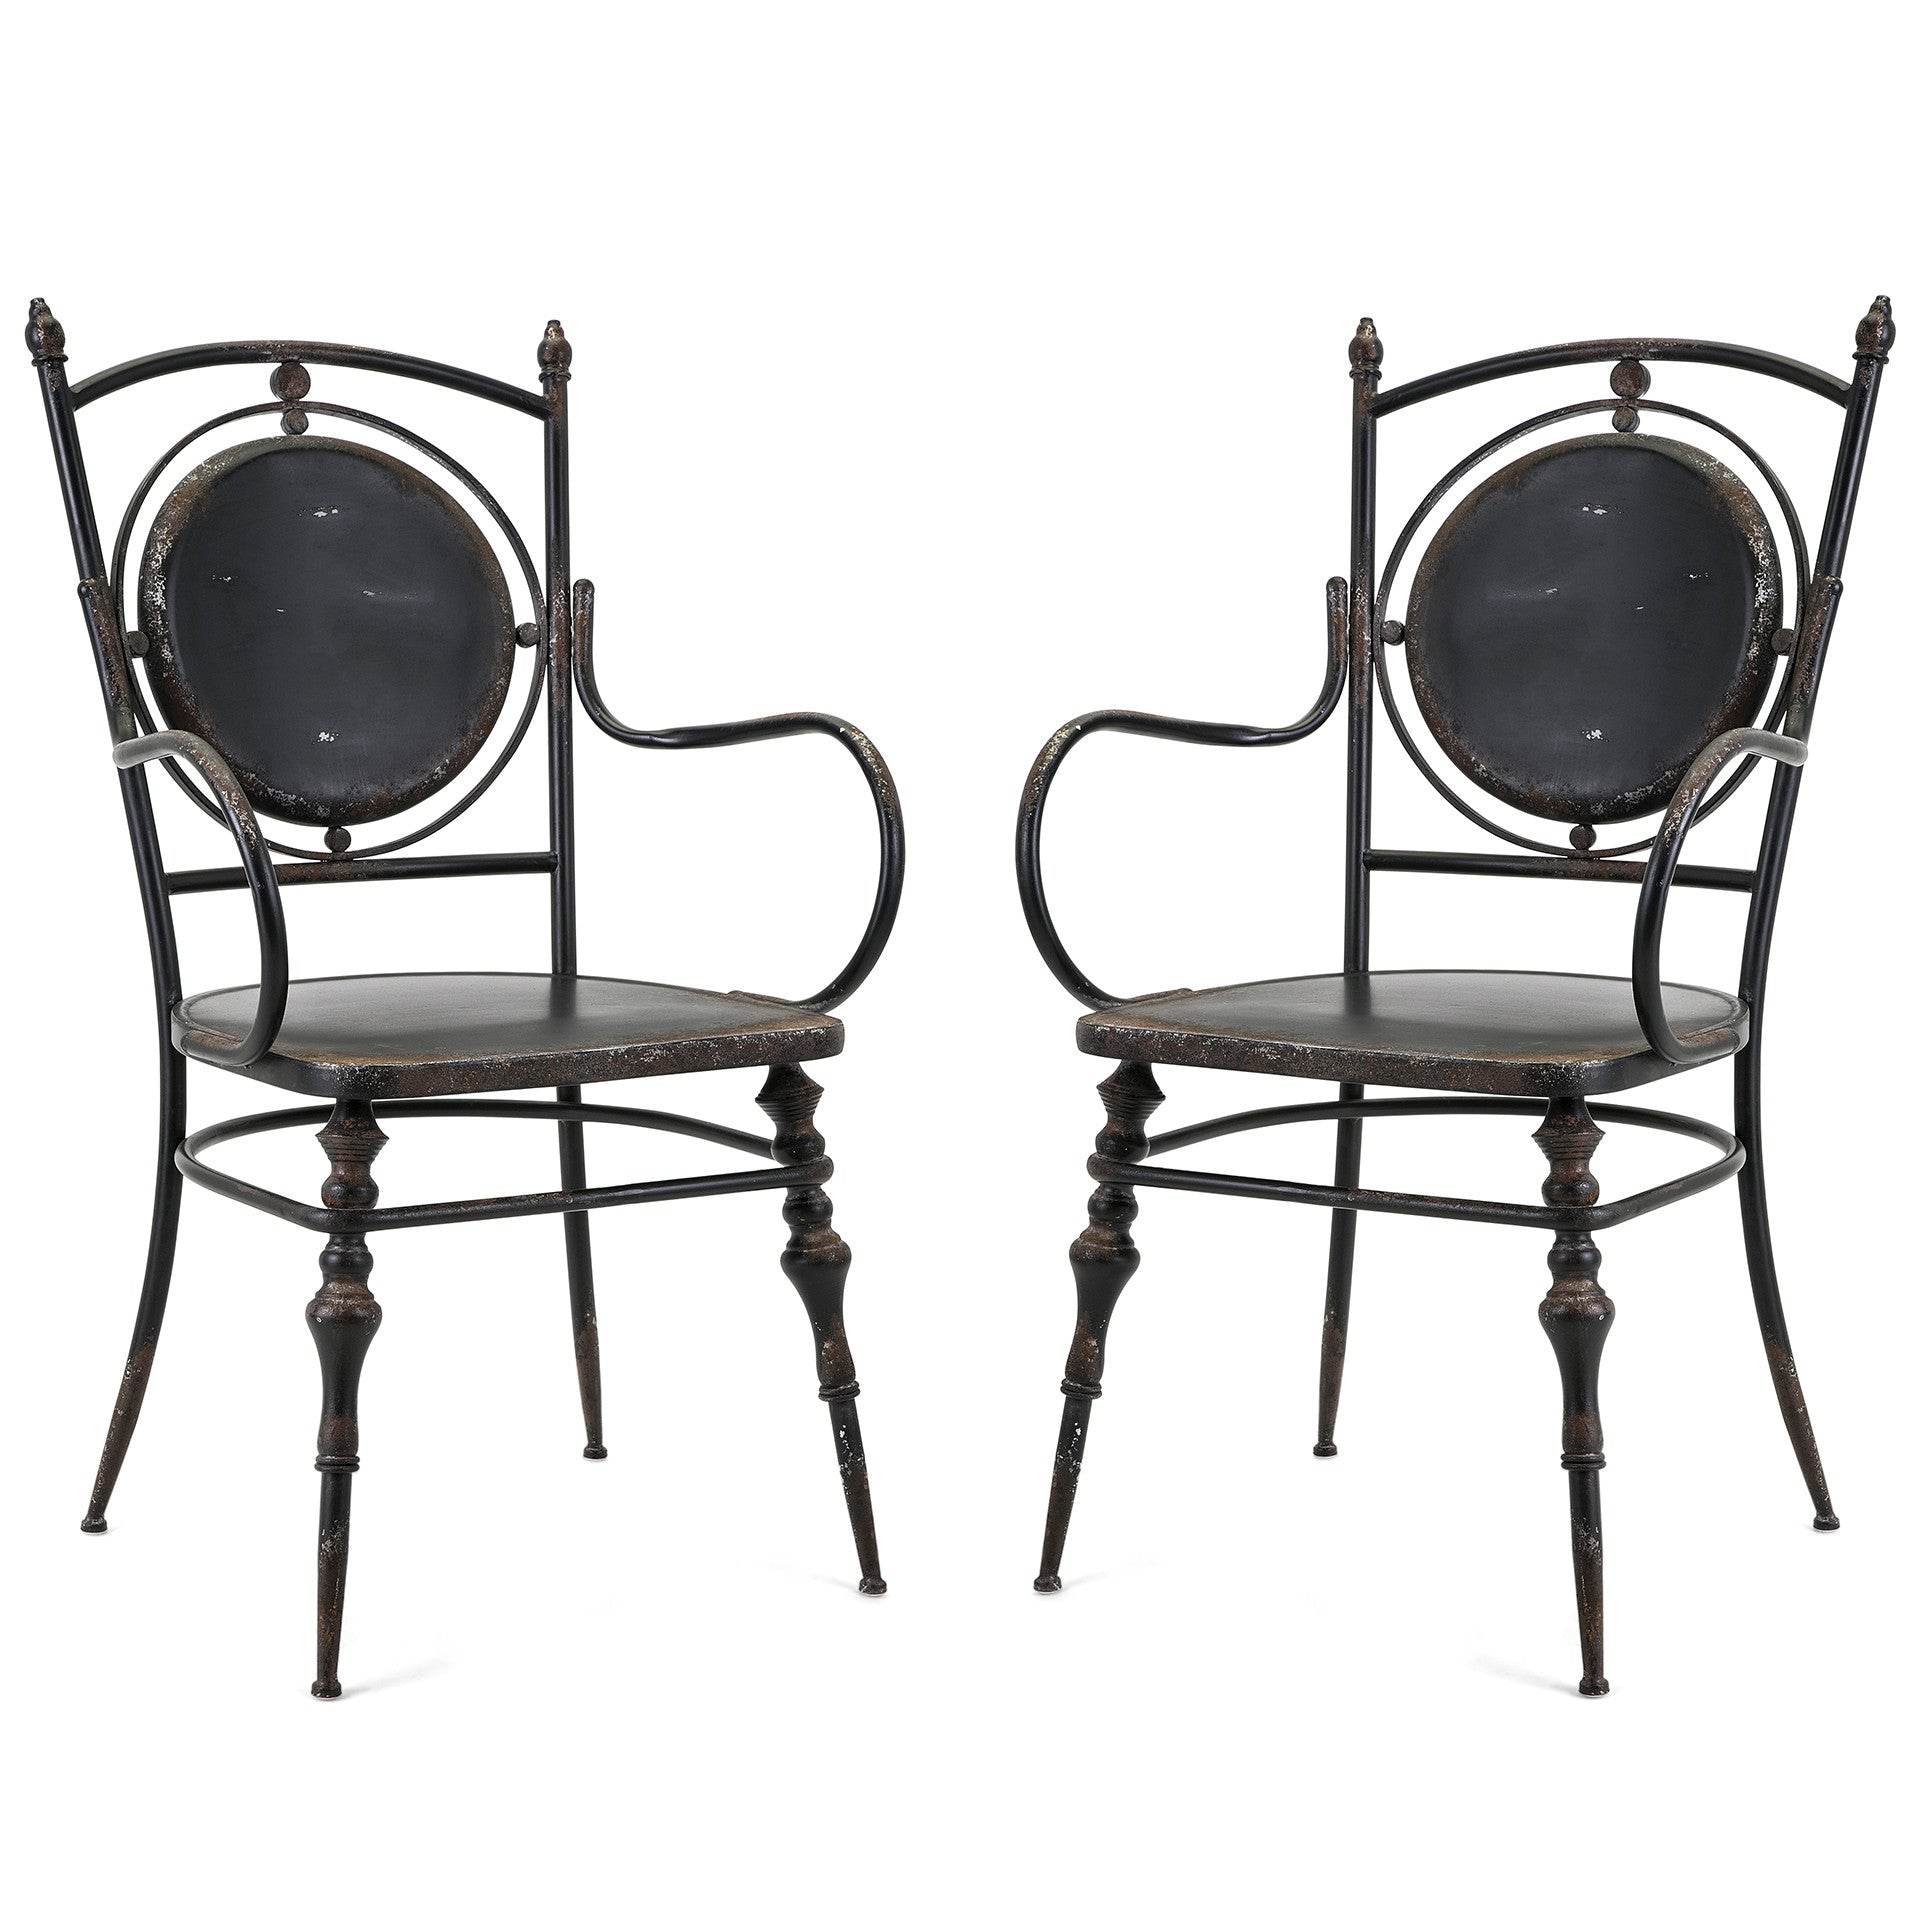 Industrial Modern Farmhouse Rustic Metal Black Arm Chairs Set of